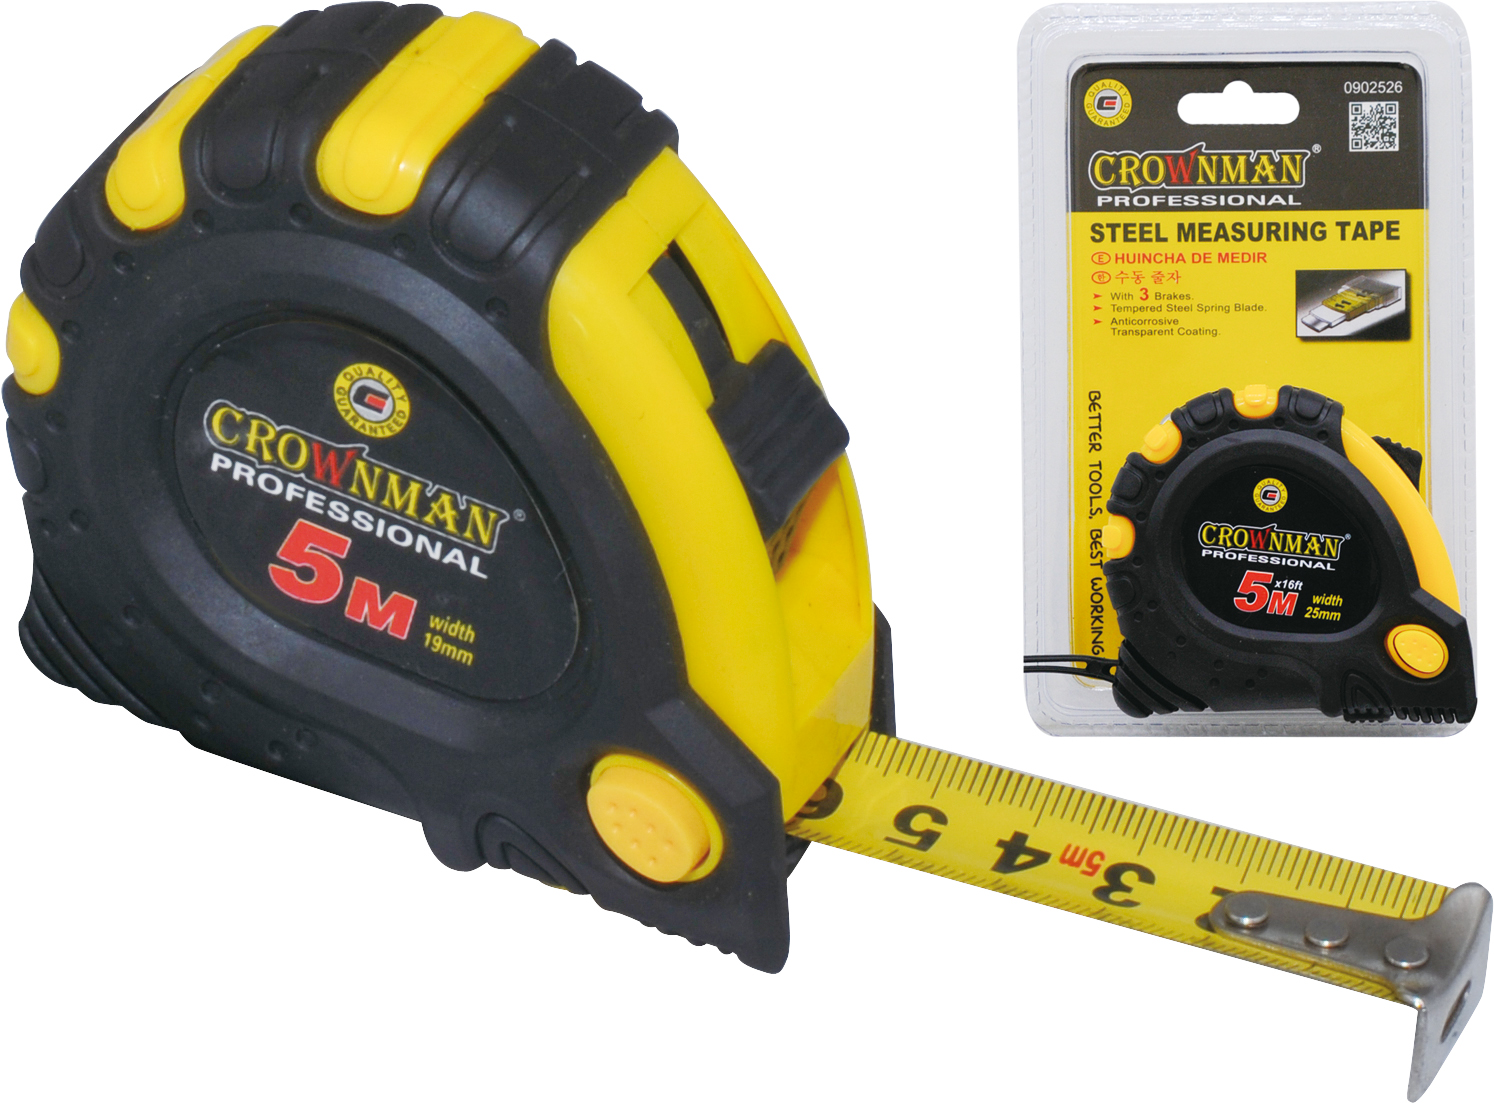 Crownman 5mx19mm Steel Measuring Tape ABS Case with TPR Coating